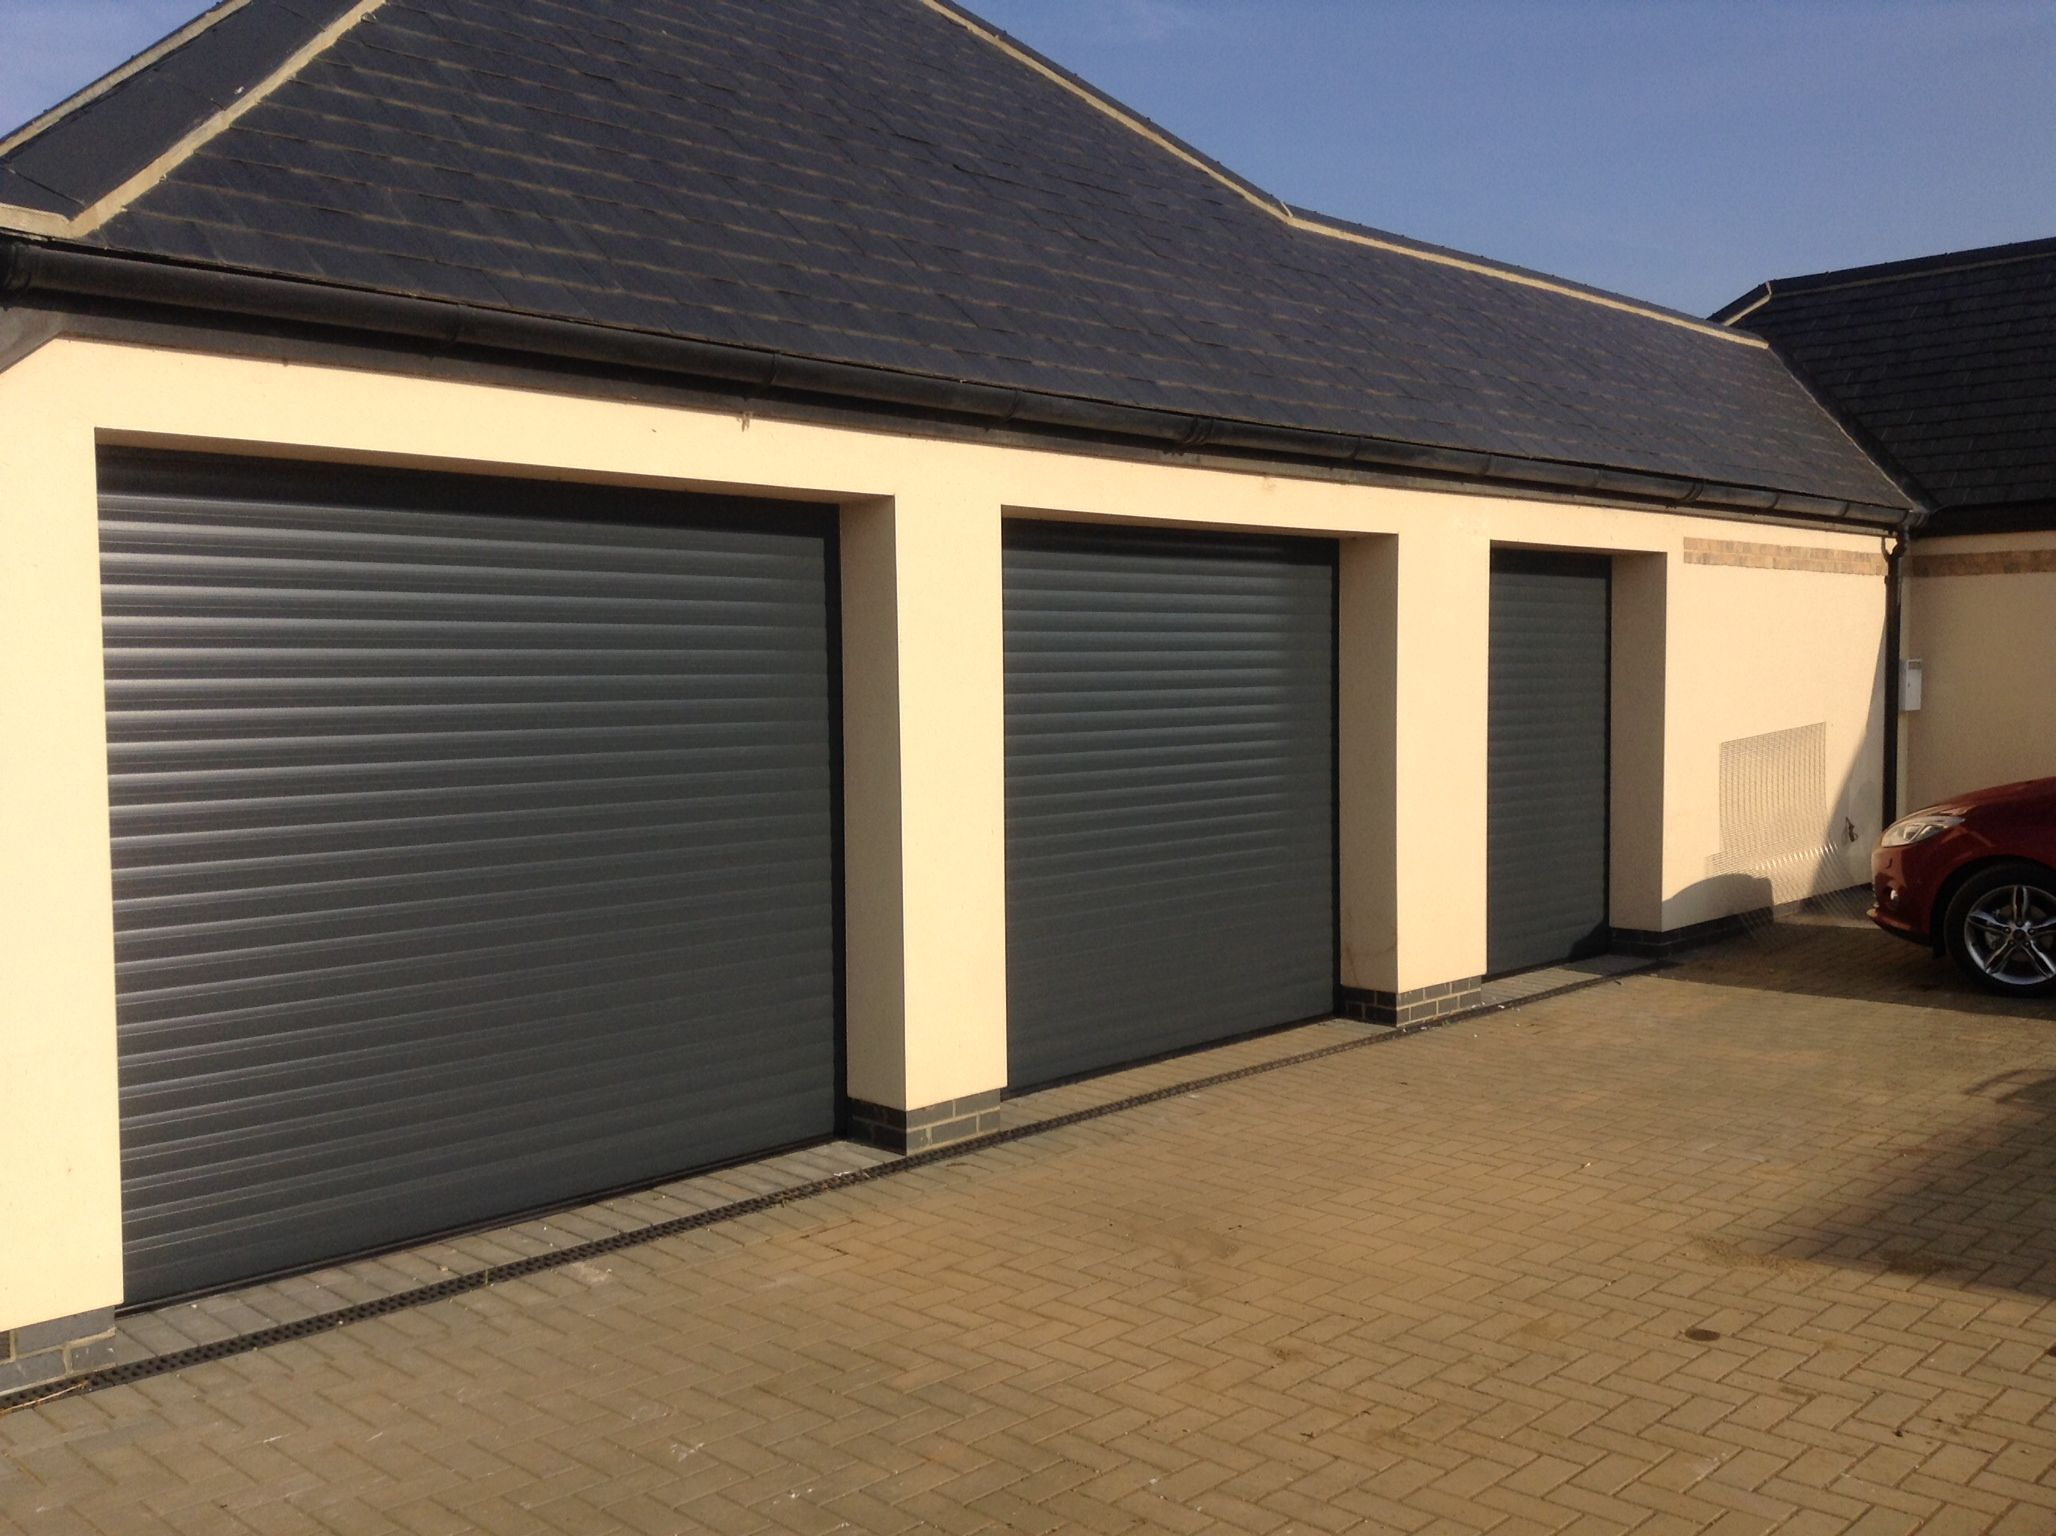 Seceuroglide insulated sectional garage door georgian cassette - Anthracite Grey Roller Doors Installed In Cambridgeshire